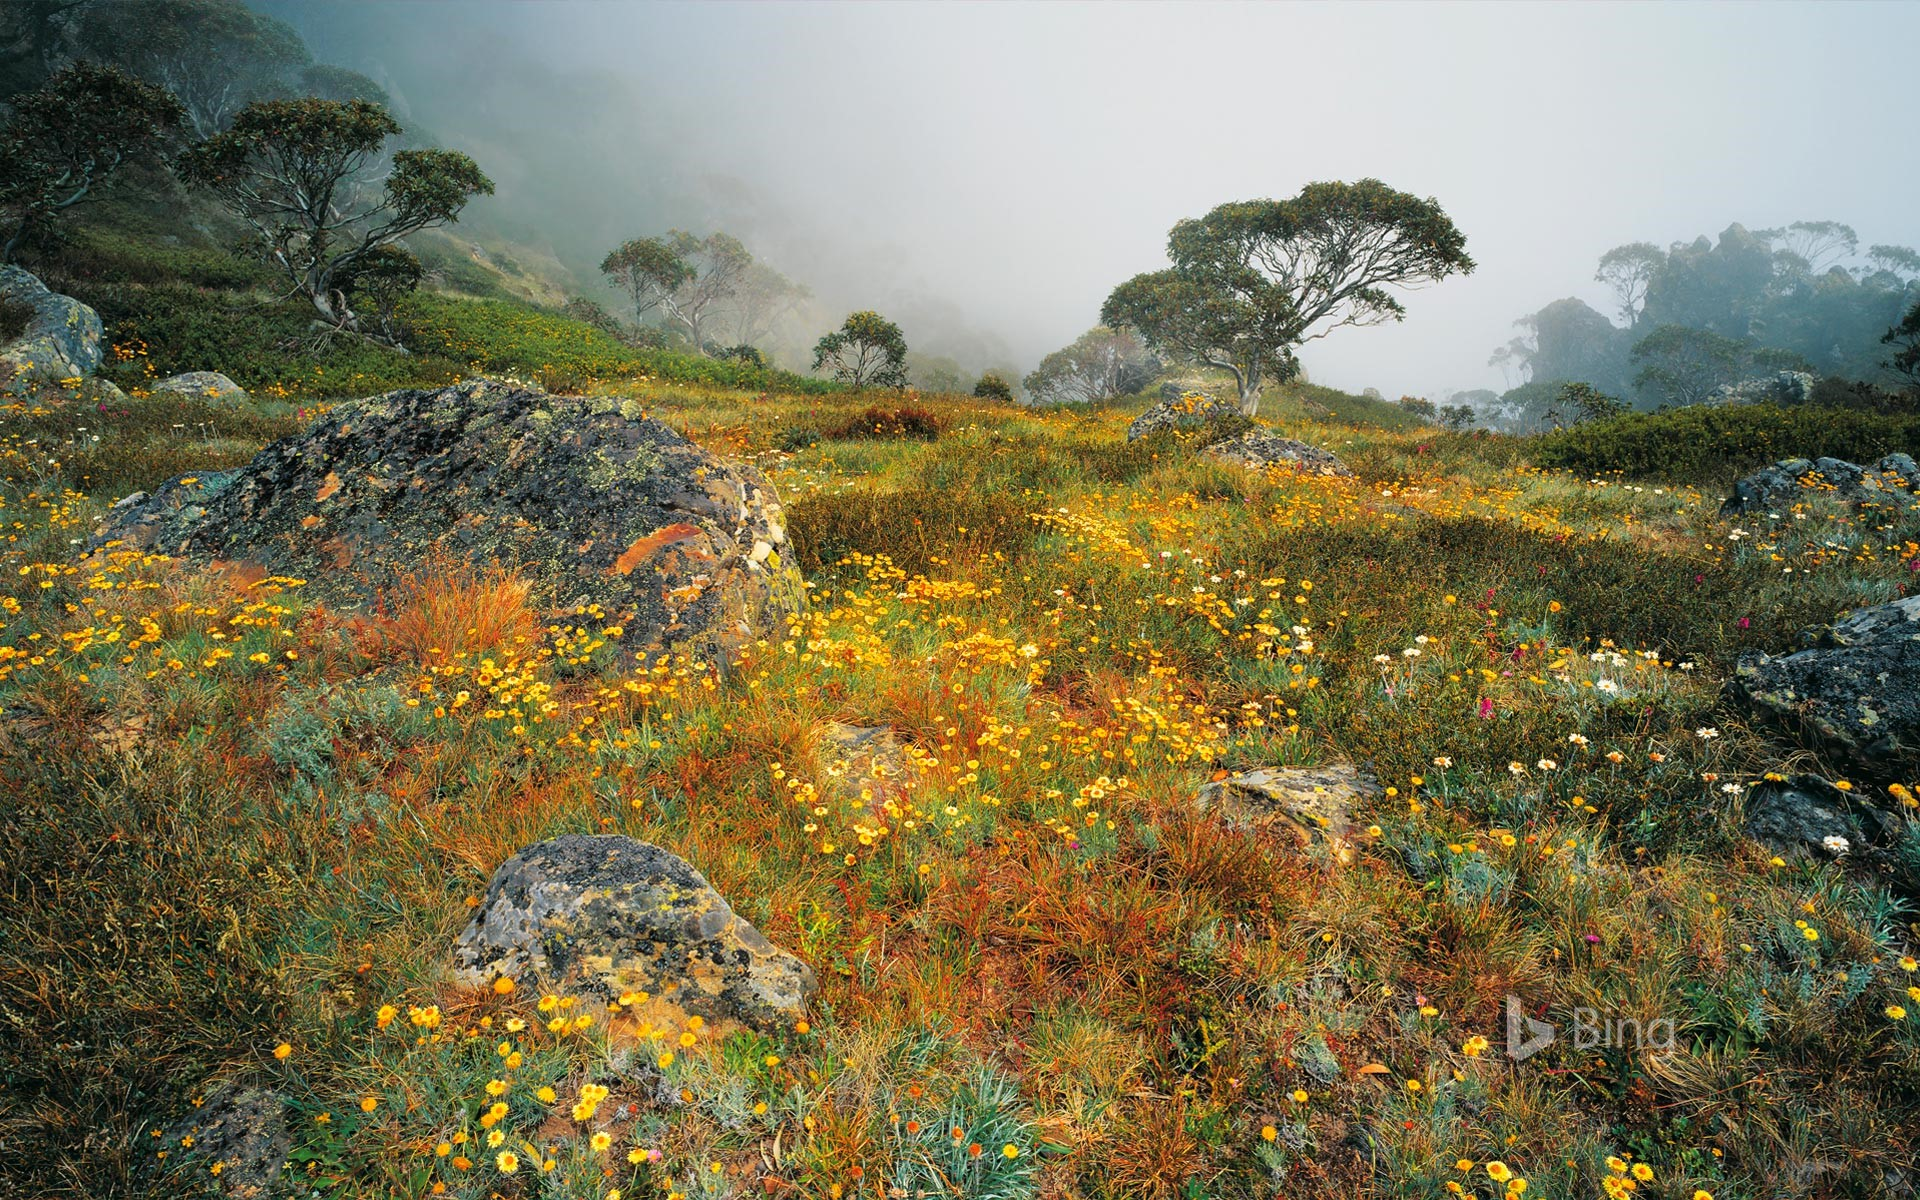 Wildflowers in the mist on Mount Howitt in Alpine National Park, Victoria, Australia